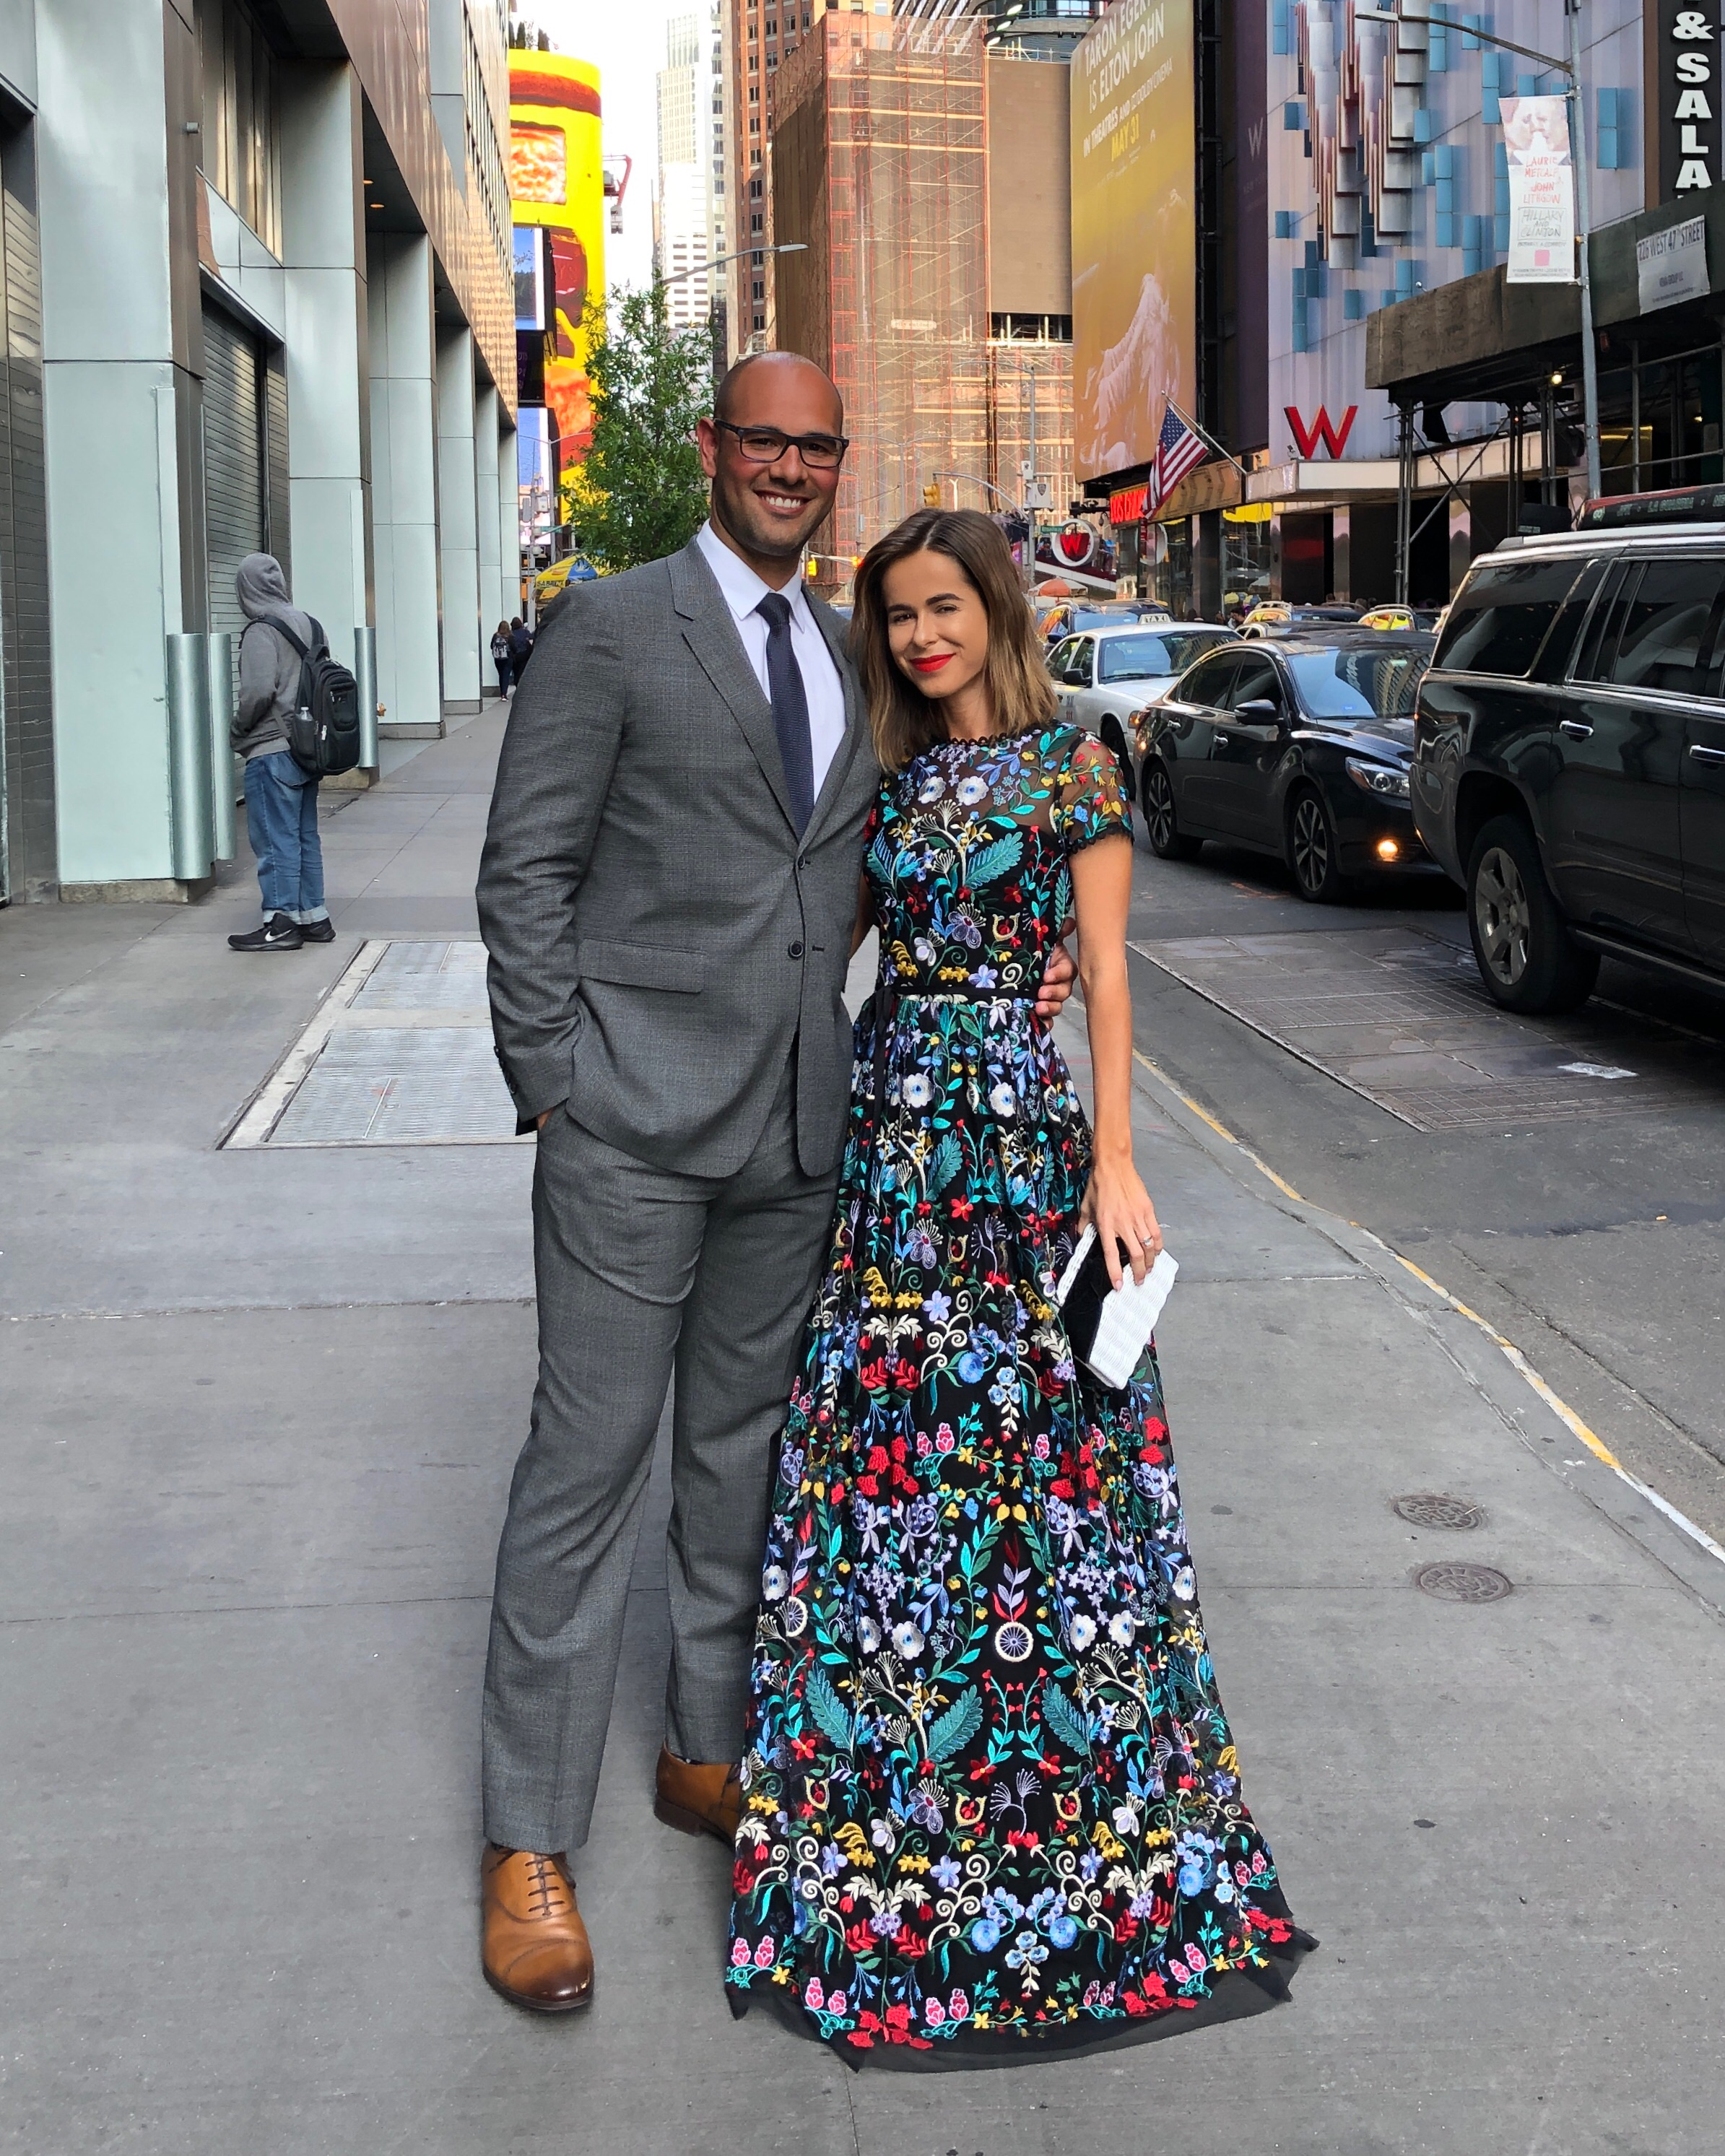 Stephanie Hill from The Style Bungalow wears ootd featuring ML Monique Lhuillier dress